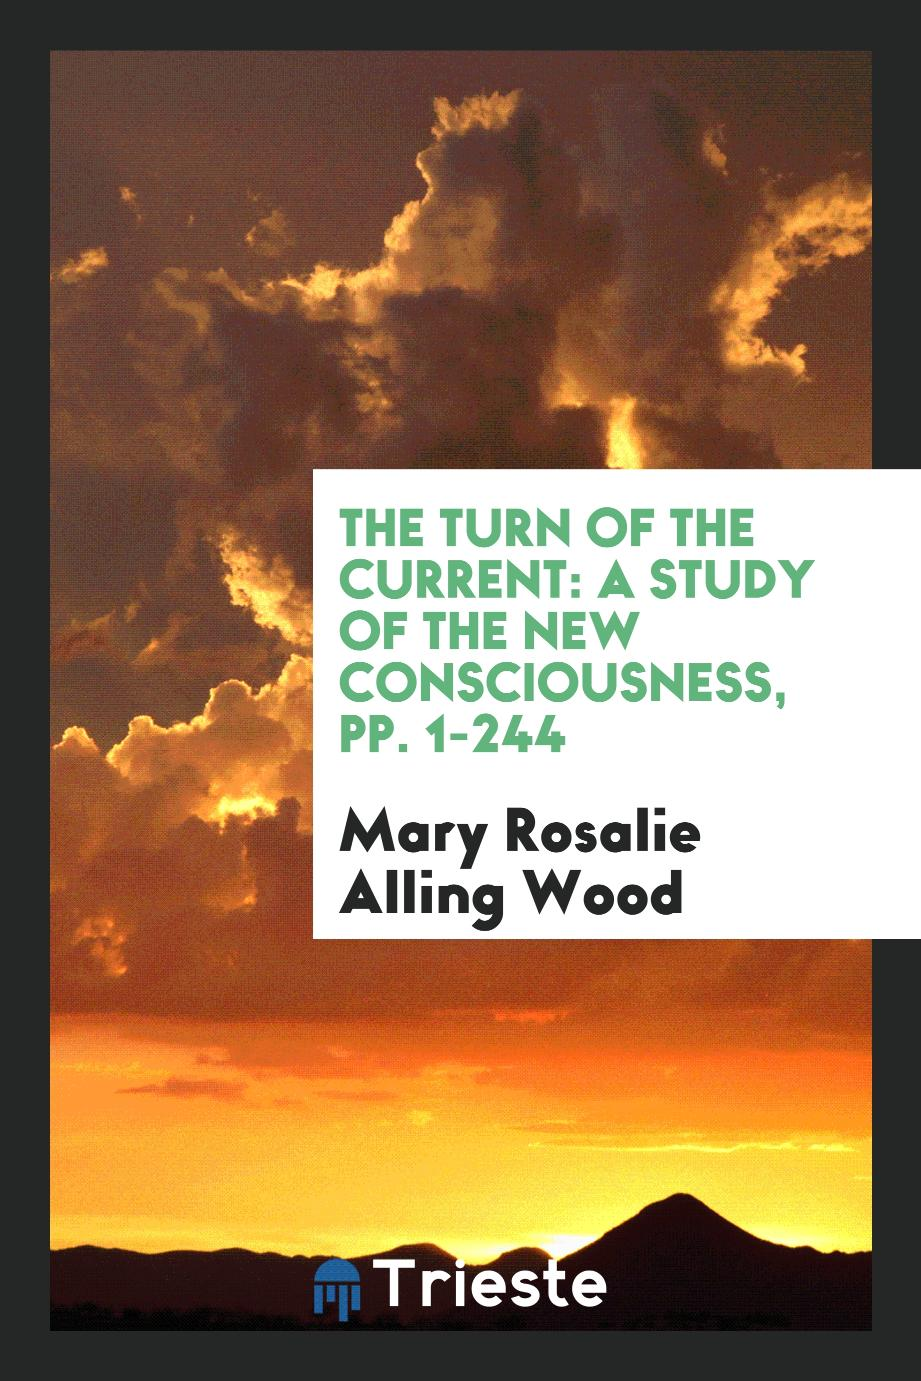 The Turn of the Current: A Study of the New Consciousness, pp. 1-244